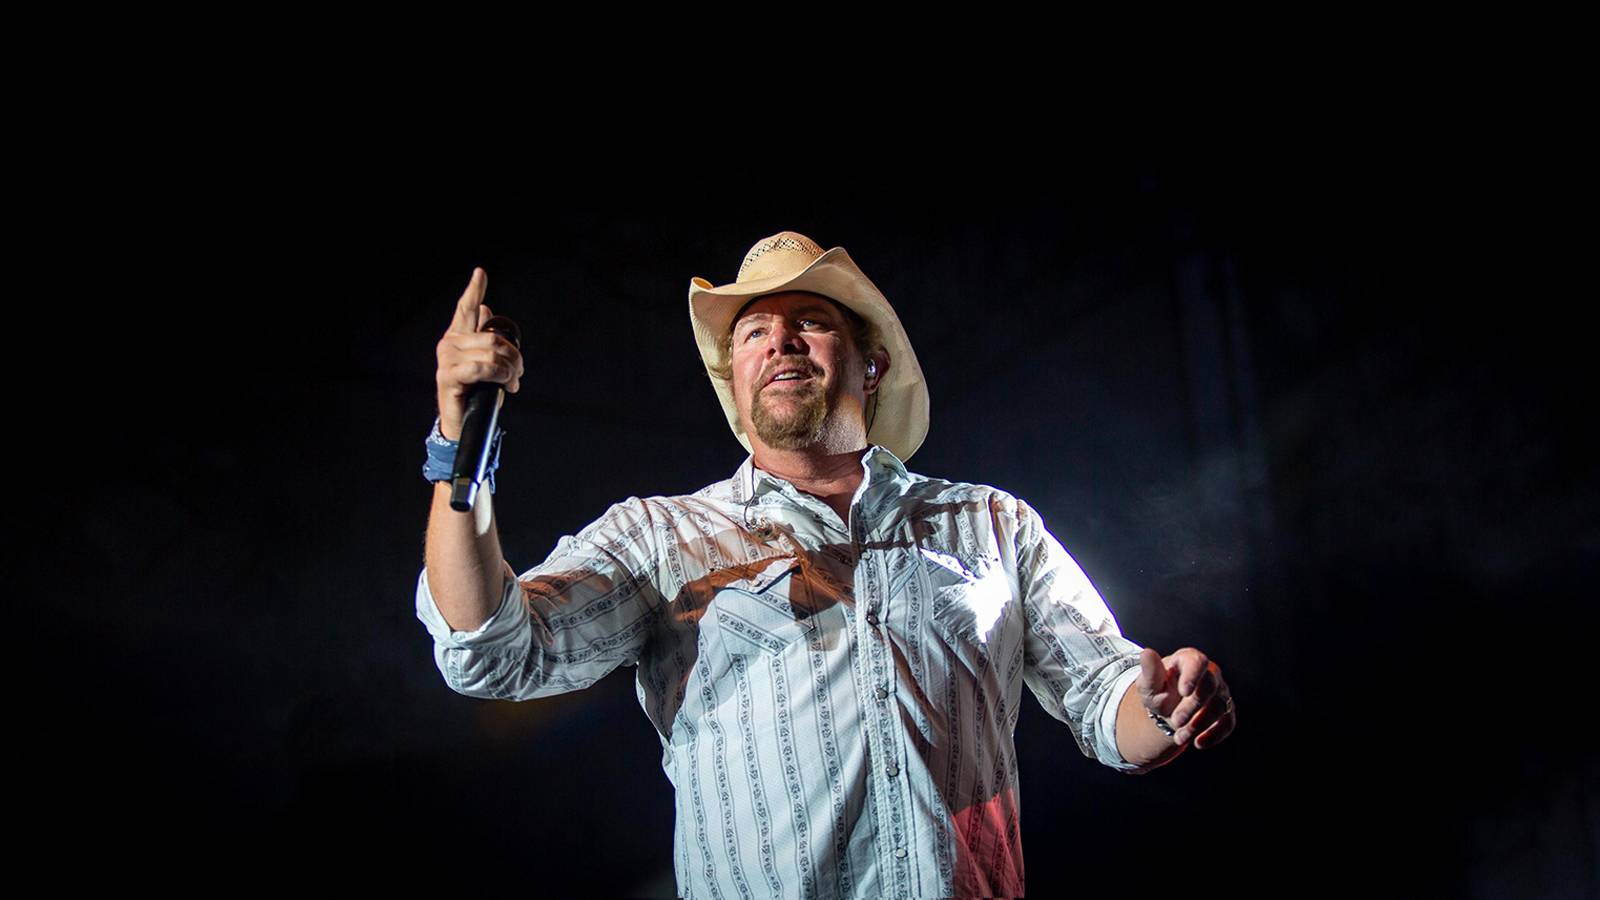 Toby Keith (Rescheduled from 7/23)